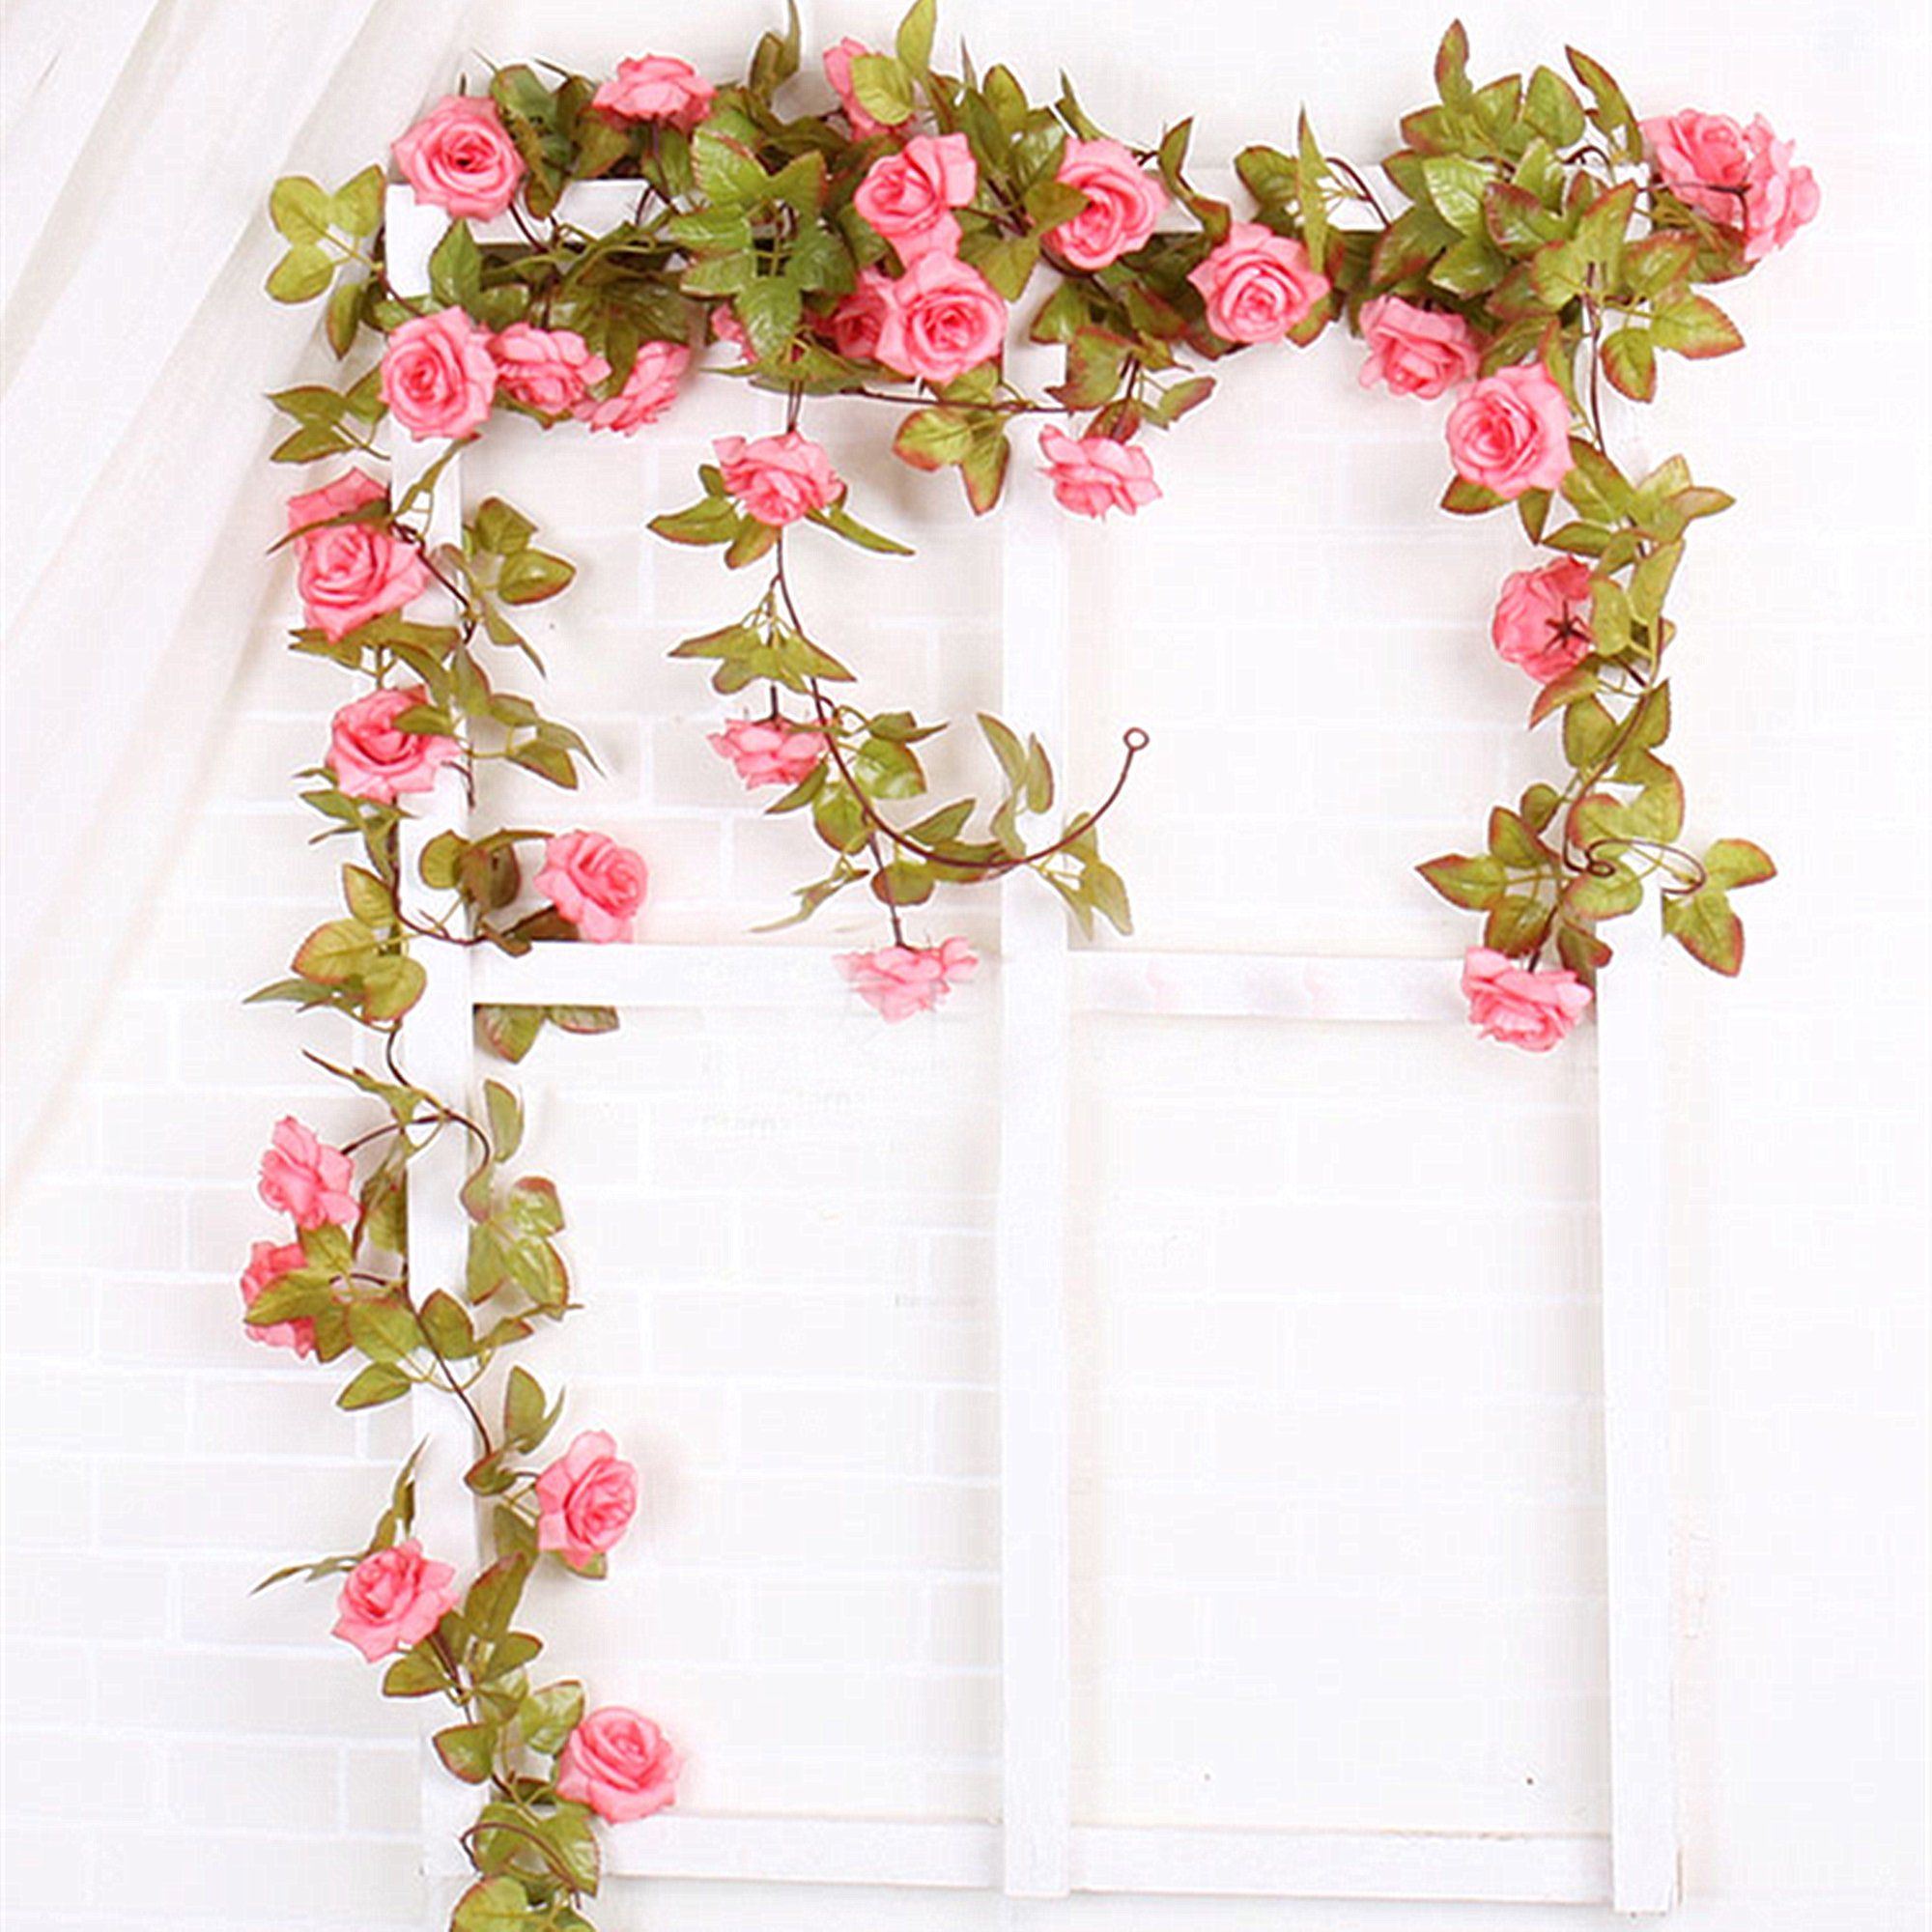 Felice Arts 2 Pack 11 Heads 7.2 Ft/pc Artificial Silk Fake Flowers Autumn Rose Vine Realistic Hanging Silk Rose Plants Wedding Home Party Arch Decor (Pink)